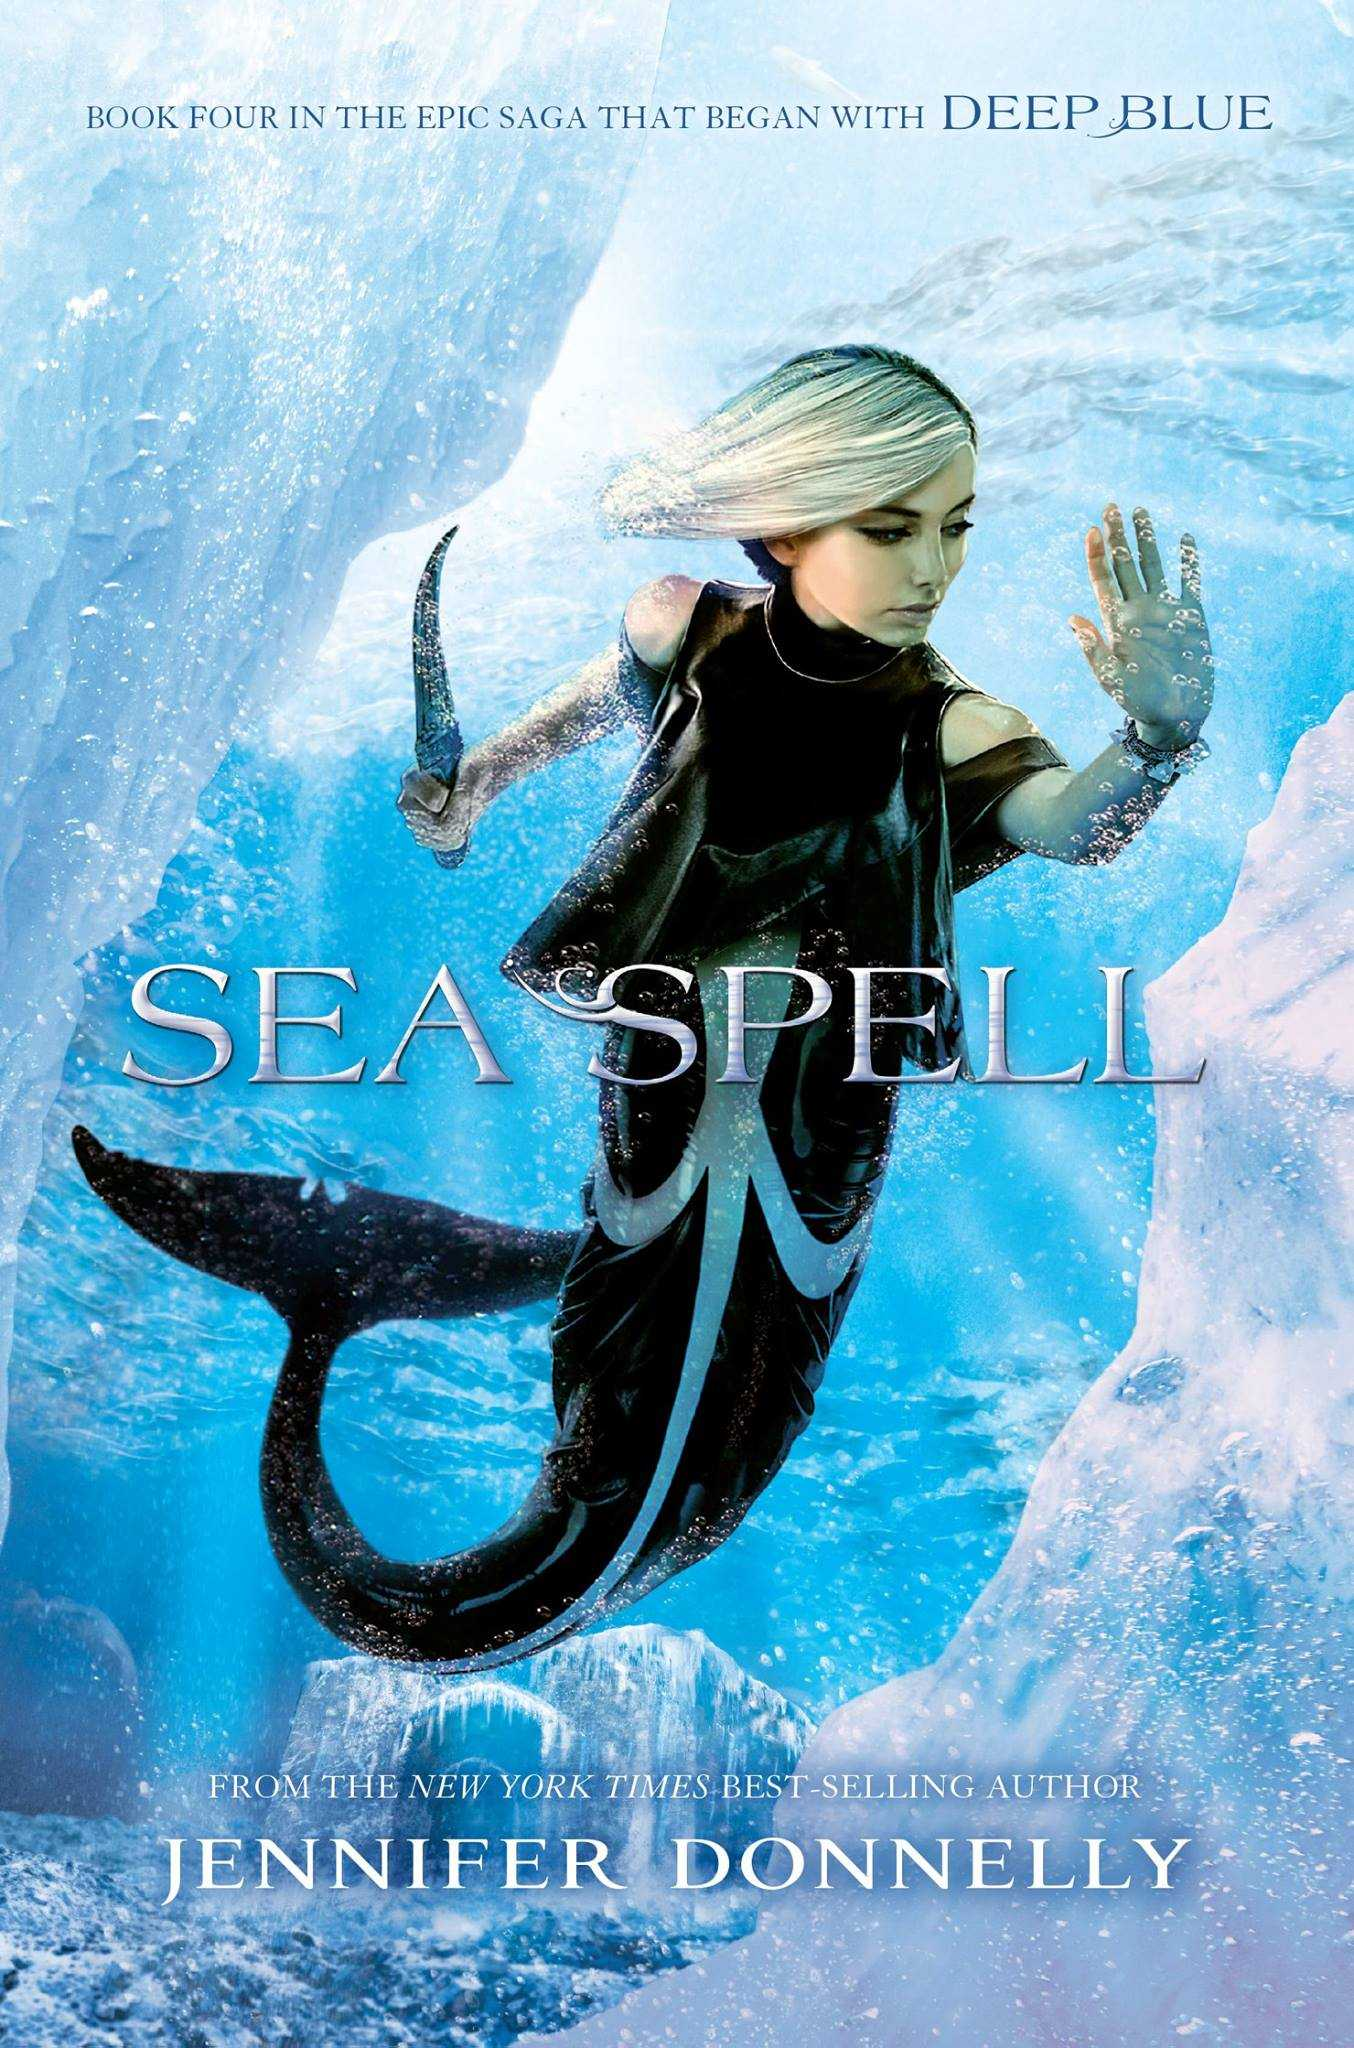 Jennifer Donelly Delivers A Thrilling Conclusion To The Waterfire Saga With 'Sea Spell' | Sea Spell